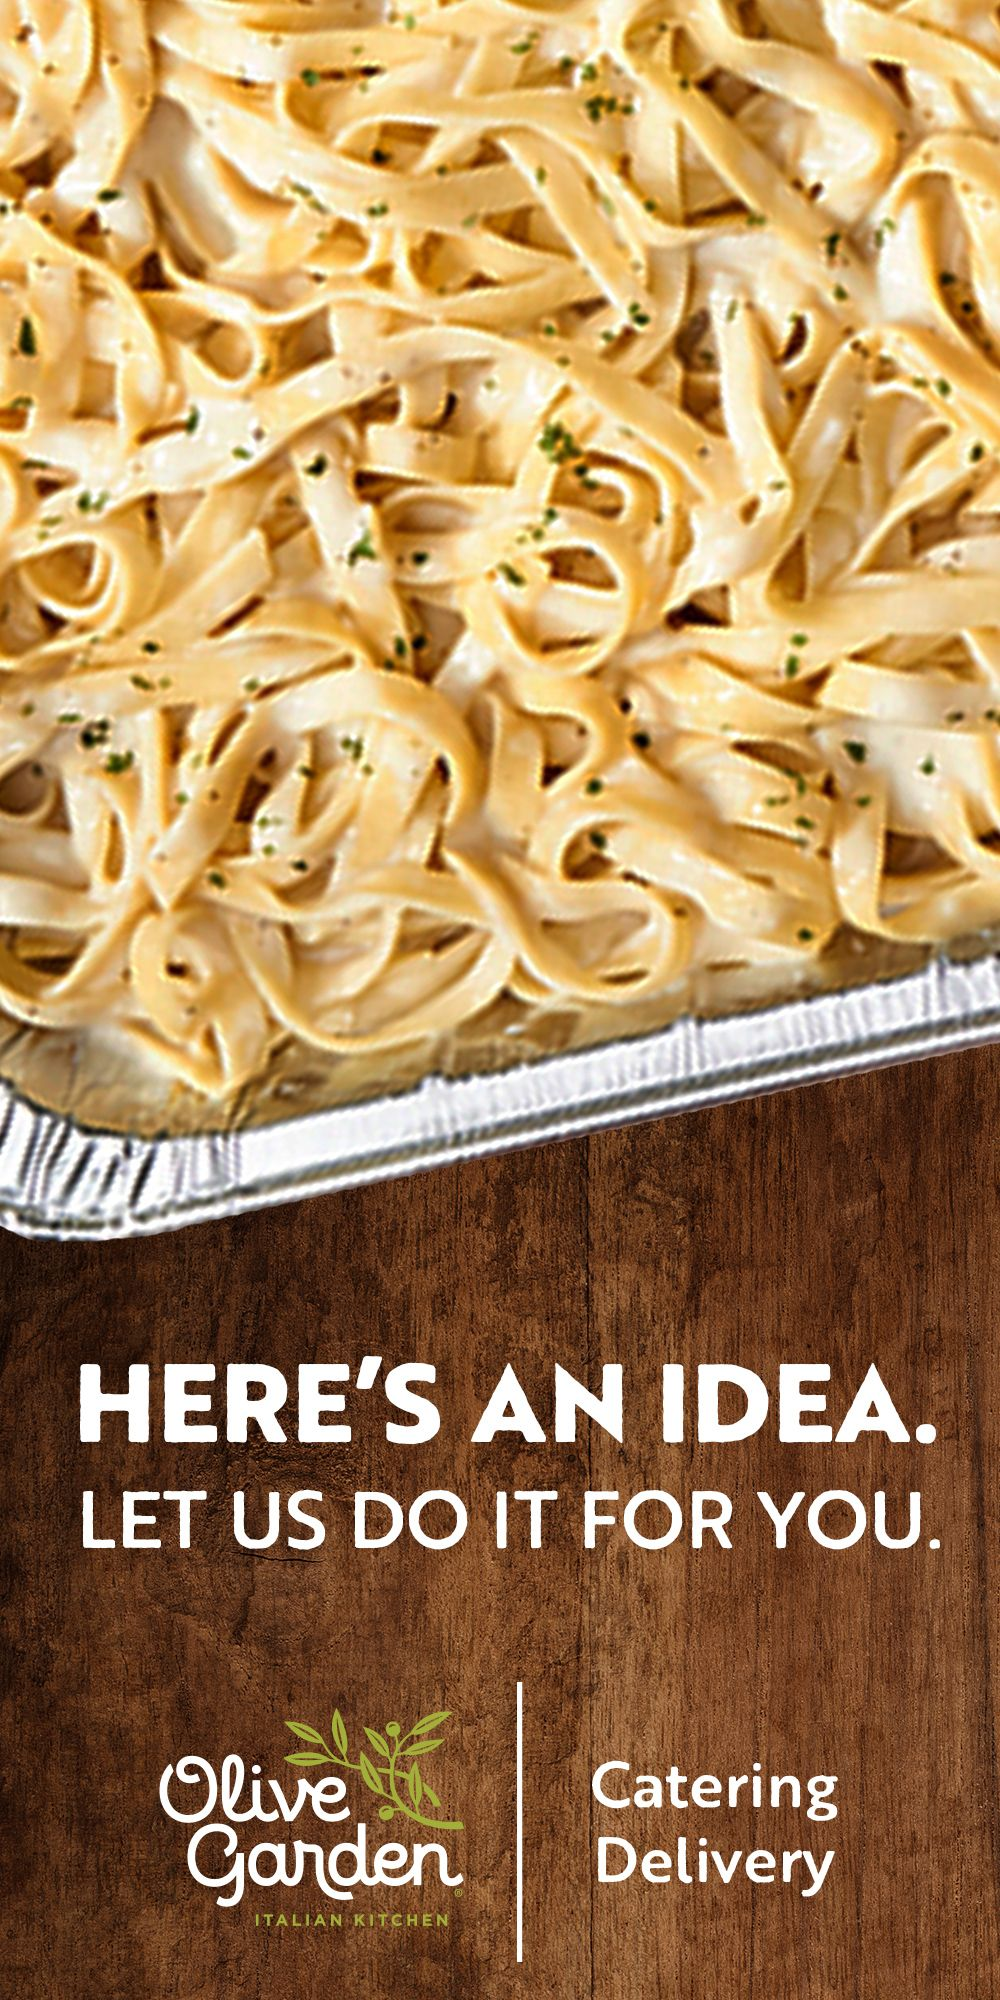 Leave the work to Olive Garden this holiday season when